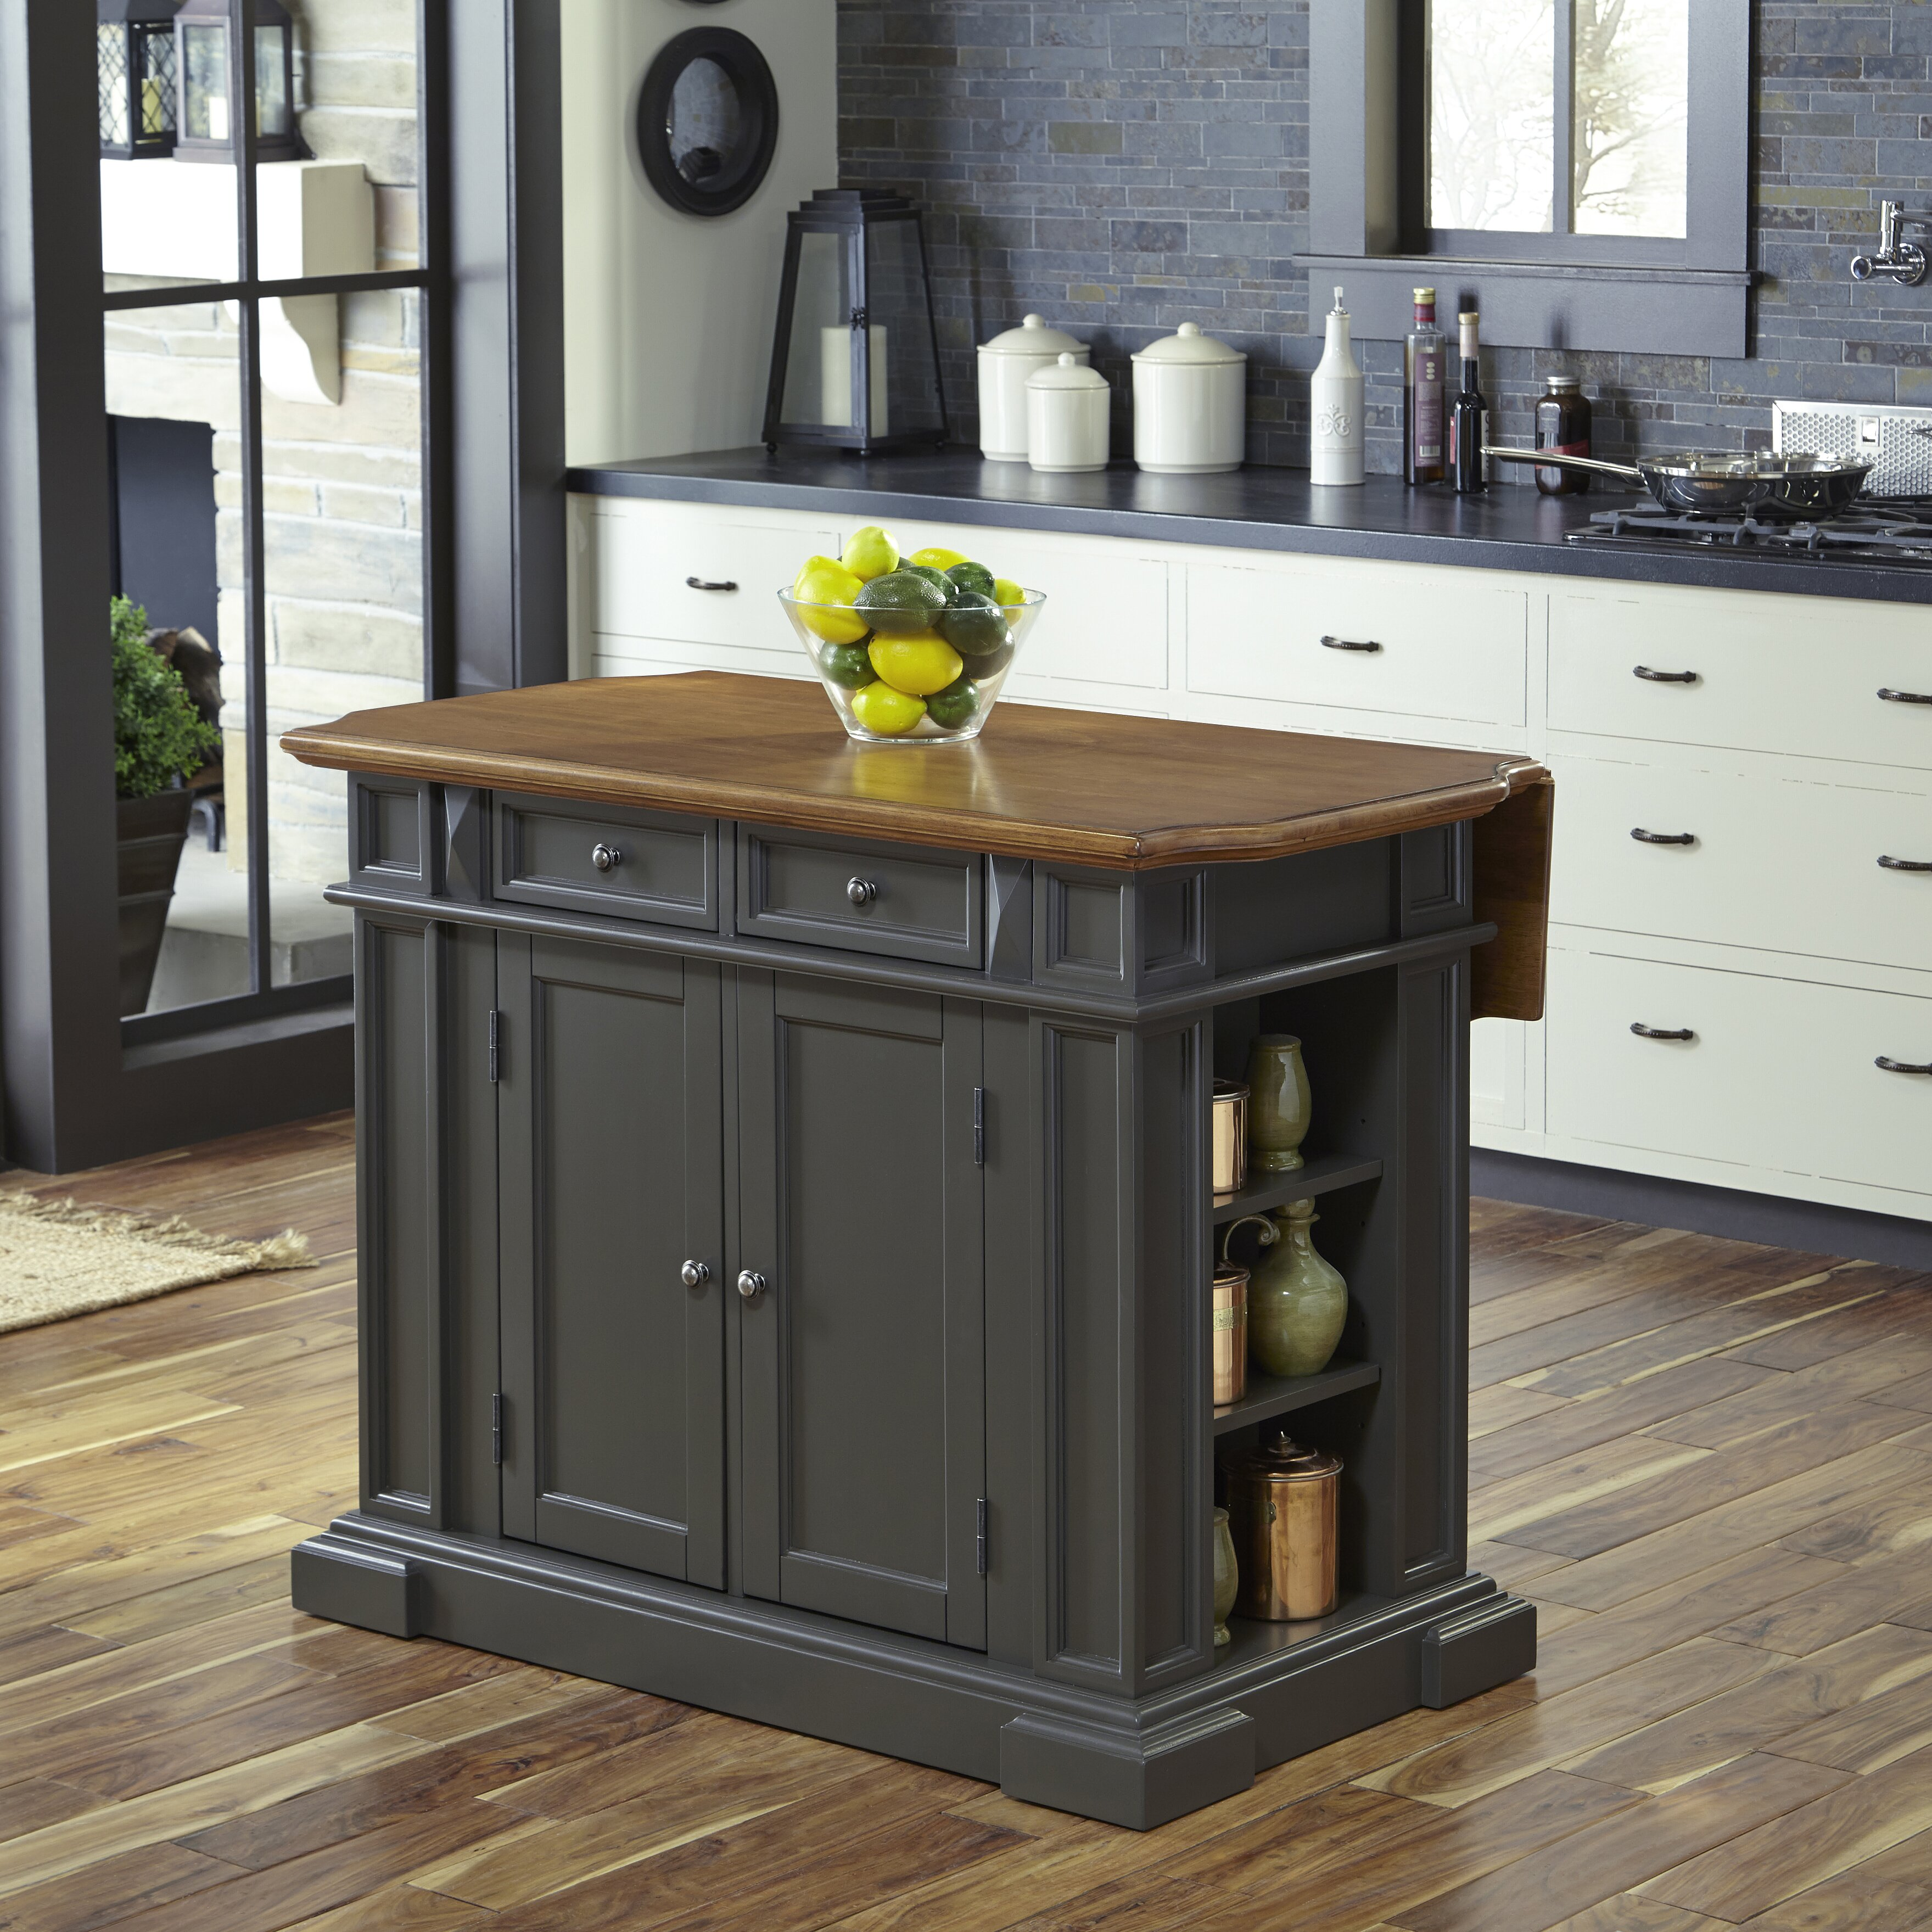 home styles americana kitchen island wayfair home styles americana kitchen island wayfair